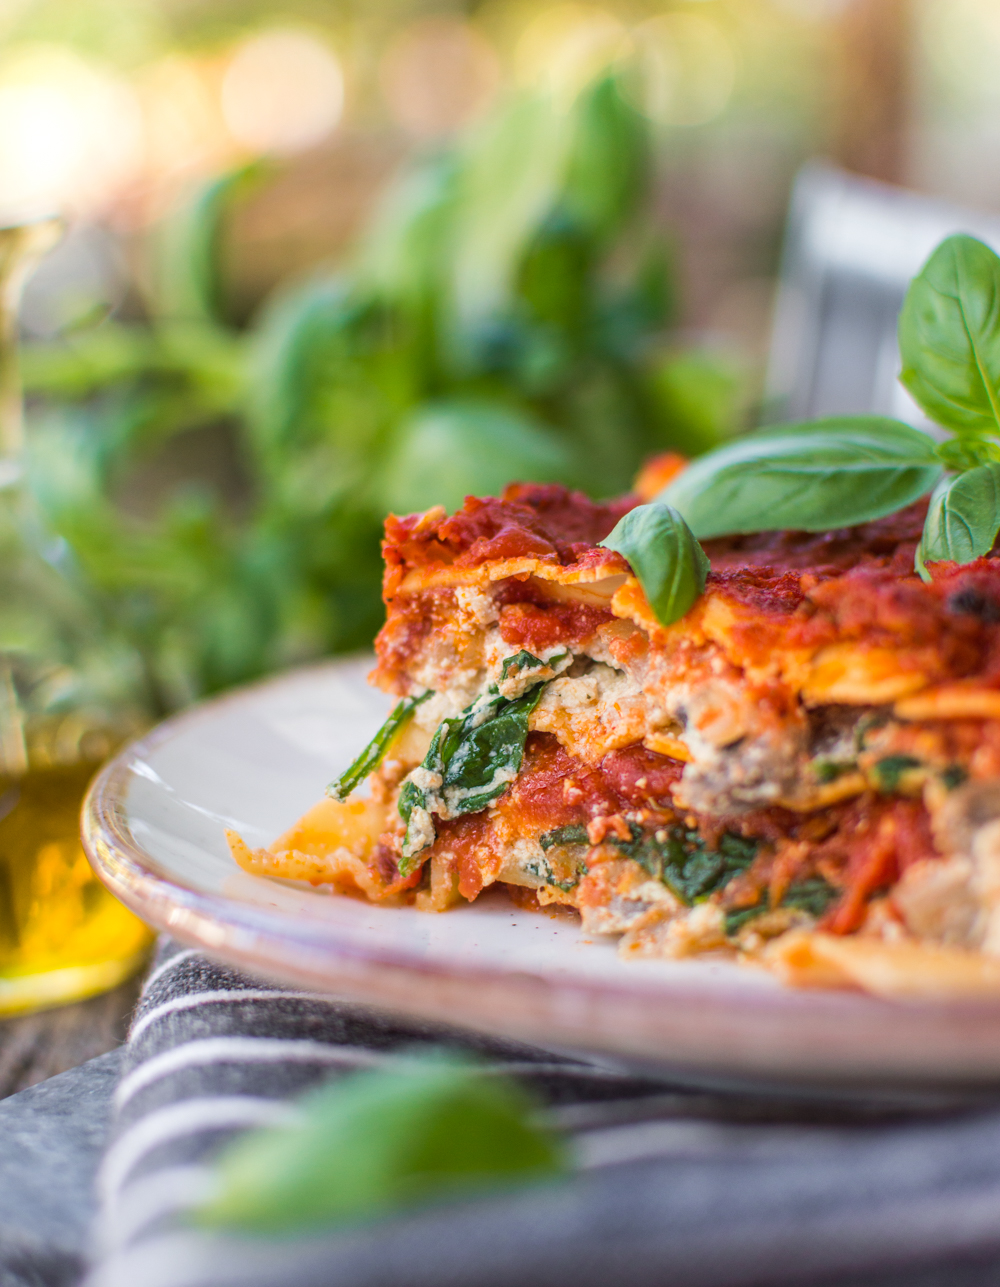 Vegan Lasagna Recipe—The Perfect Slice!